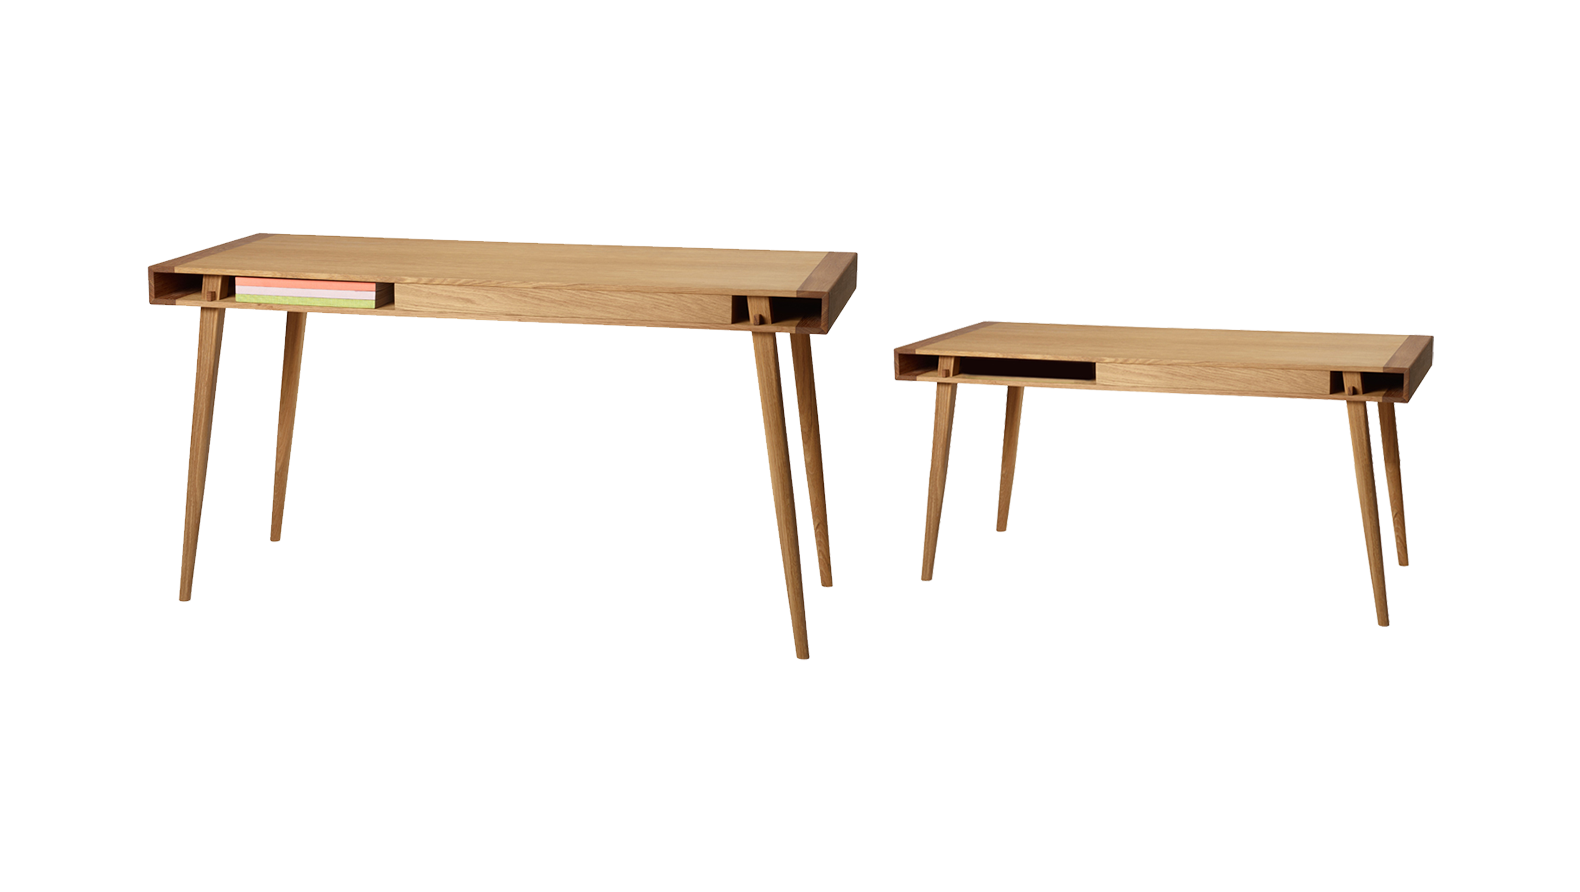 Danish Design Furniture: Poet Table produced by Nordic Tales, designed by Martin D. Christensen